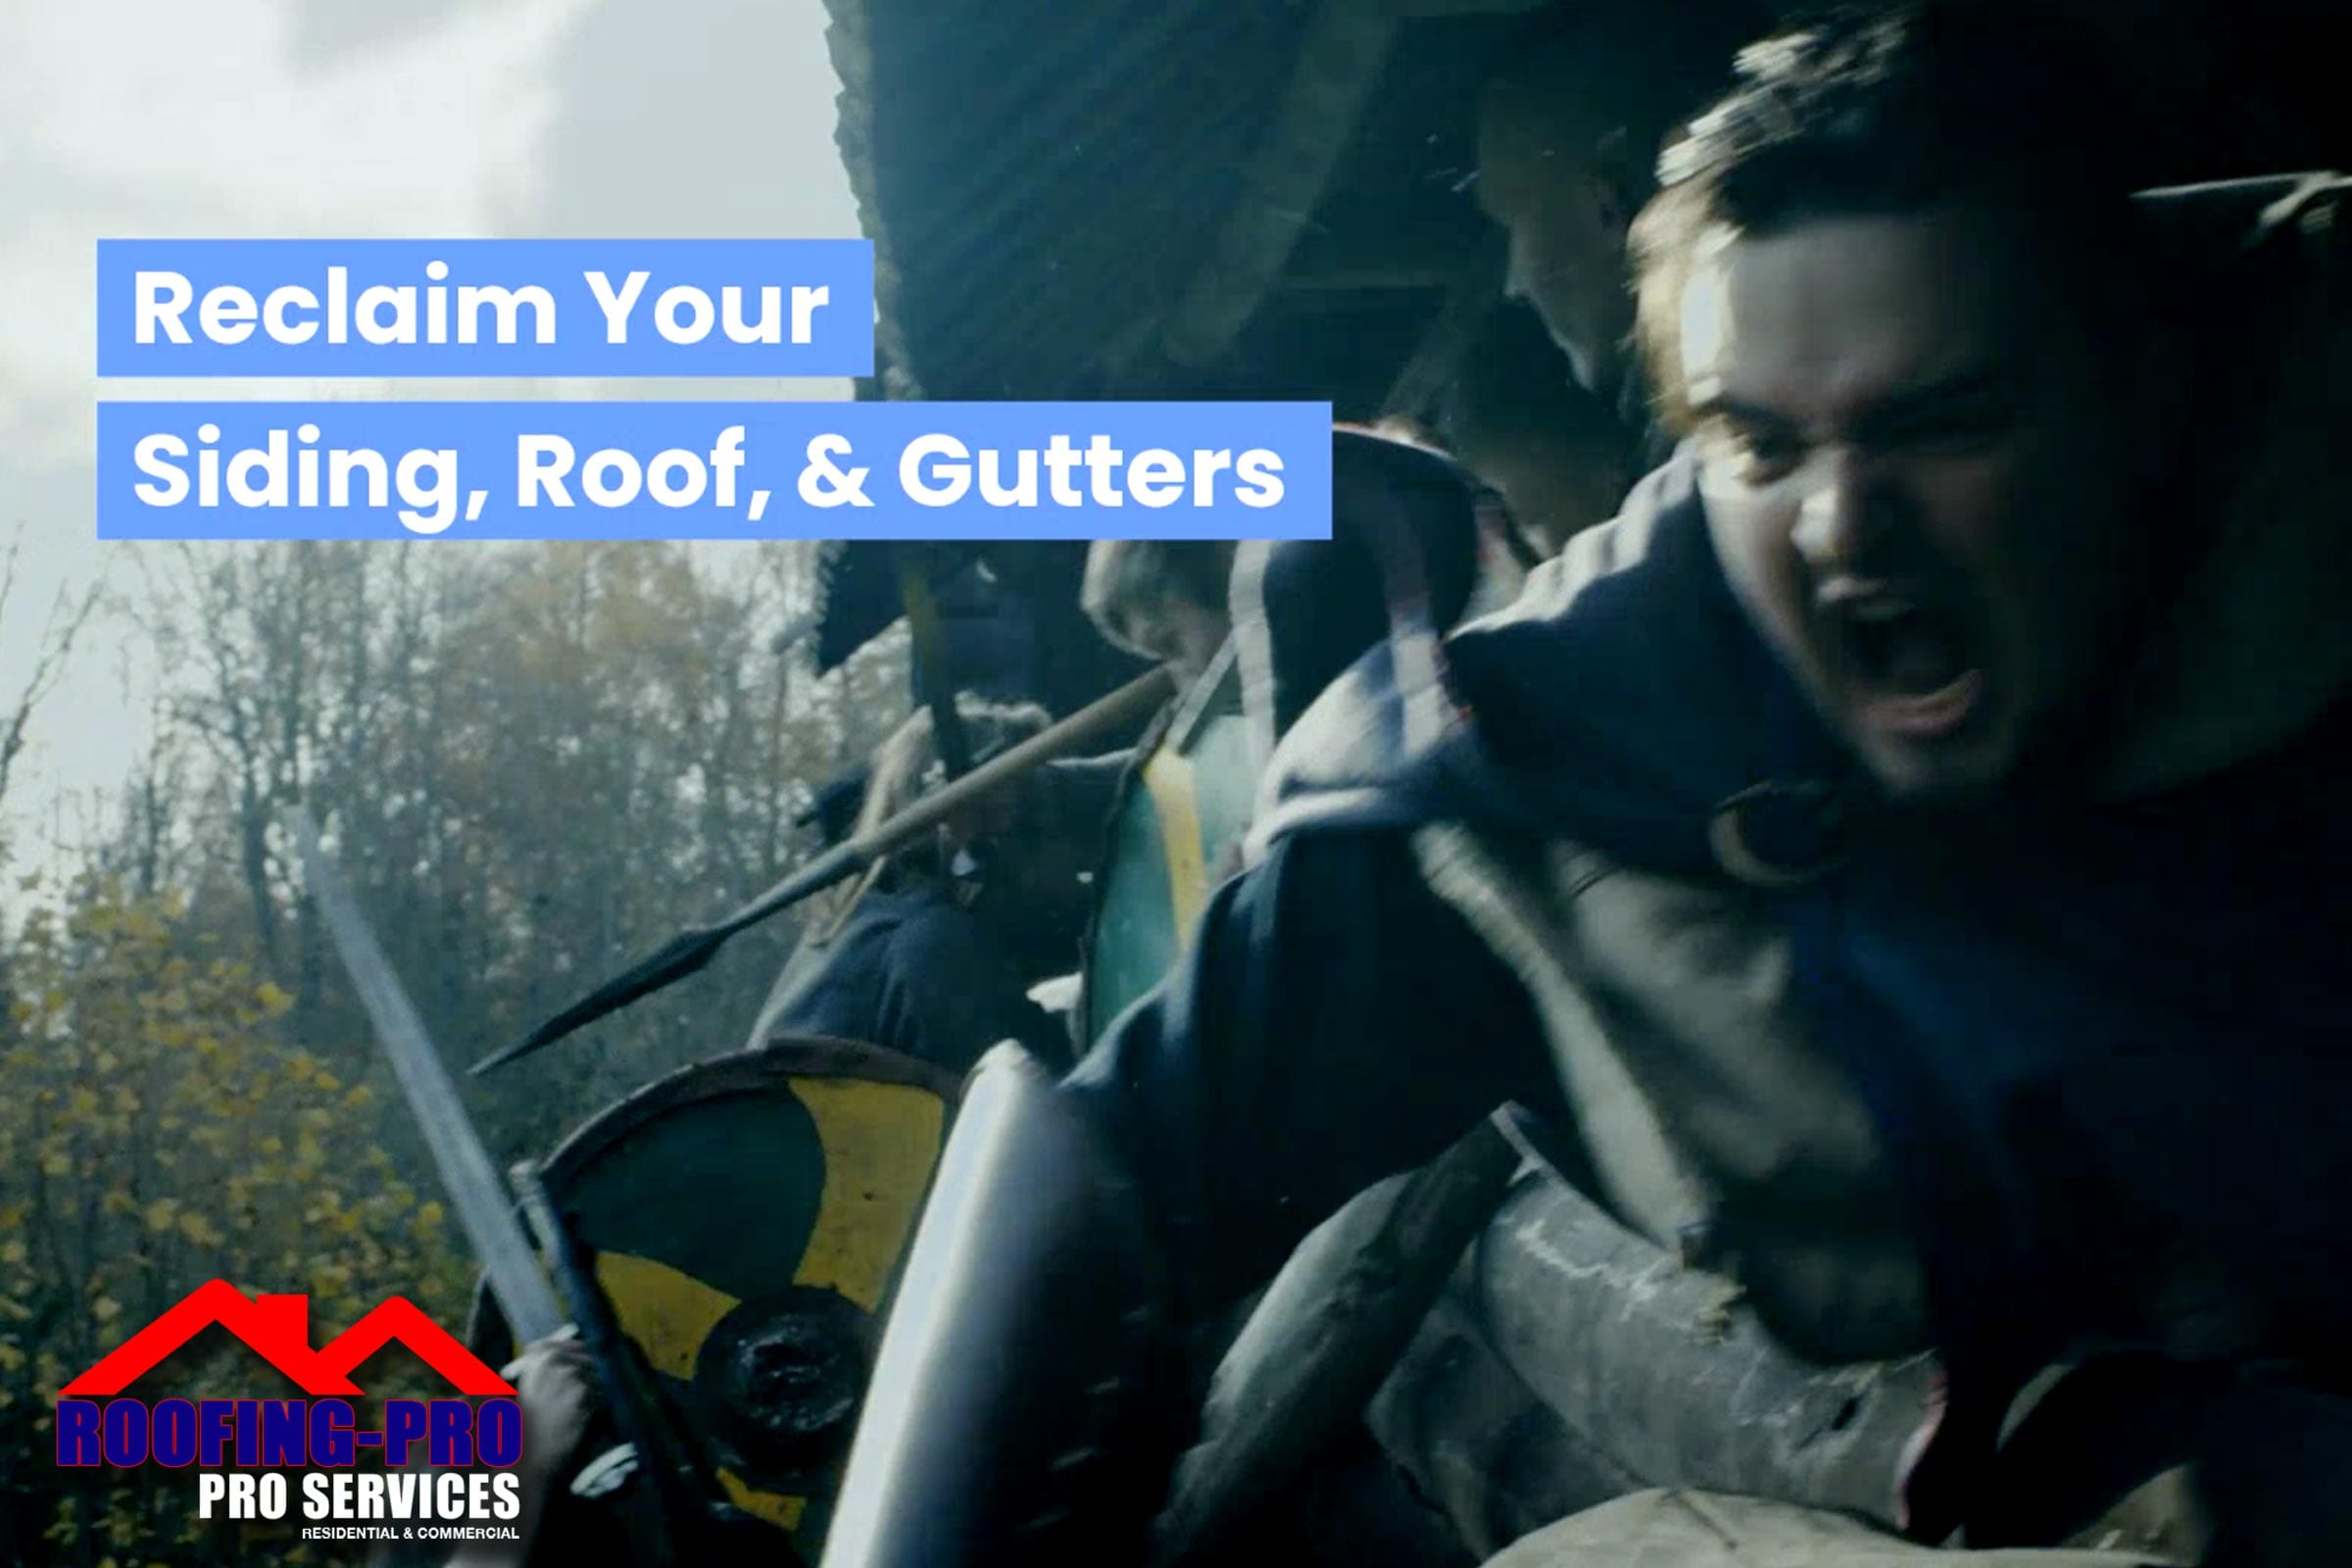 Roofing-Pro-Reclaim-Your-Roof-With-New-Roof-Install-And-Gutters